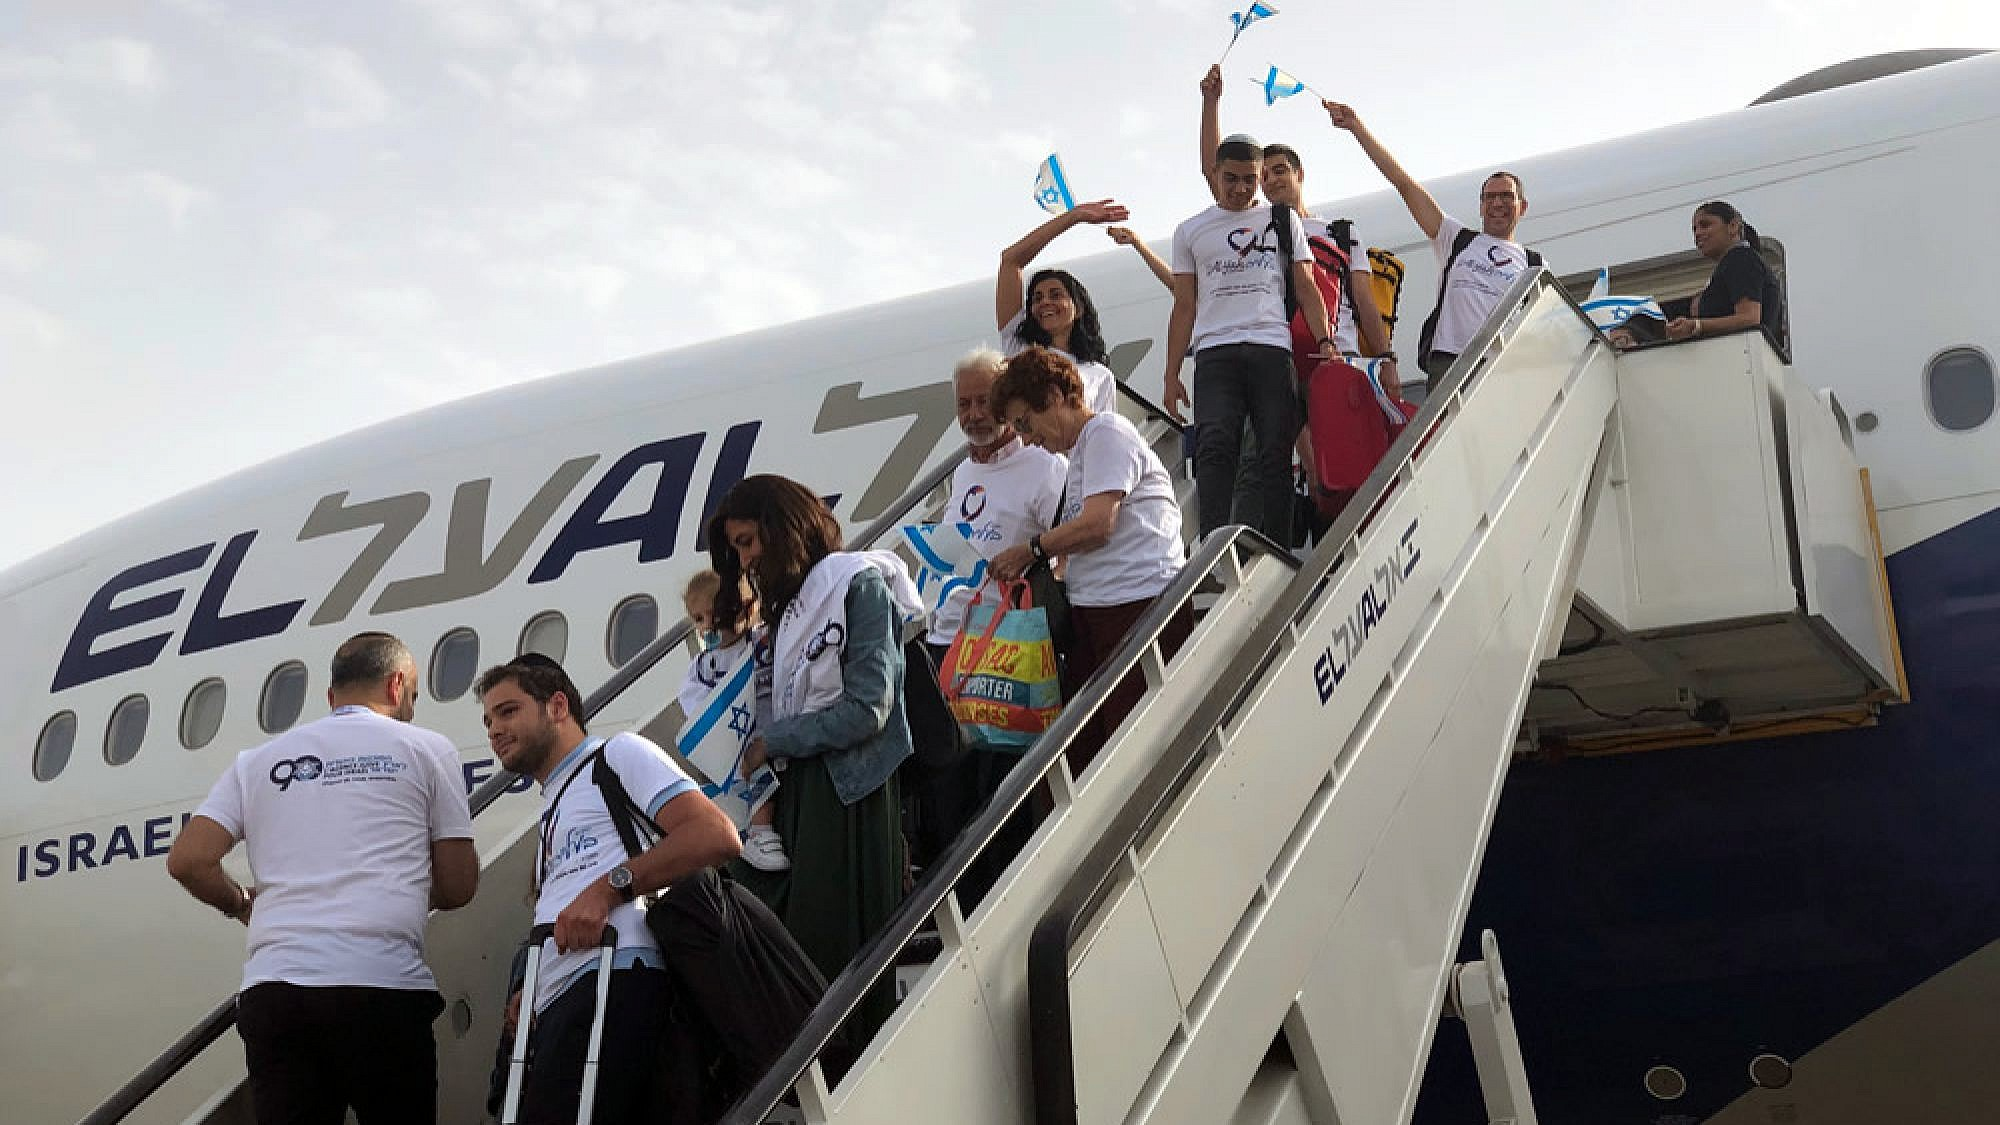 """More than 200 new immigrants (olim) from France, Brazil, Argentina, Venezuela and Russia kick off the """"season of aliyah,"""" in which thousands of new immigrants from all over the world arrive in Israel during the summer months, July 17, 2019. Photo by Eliana Rudee."""